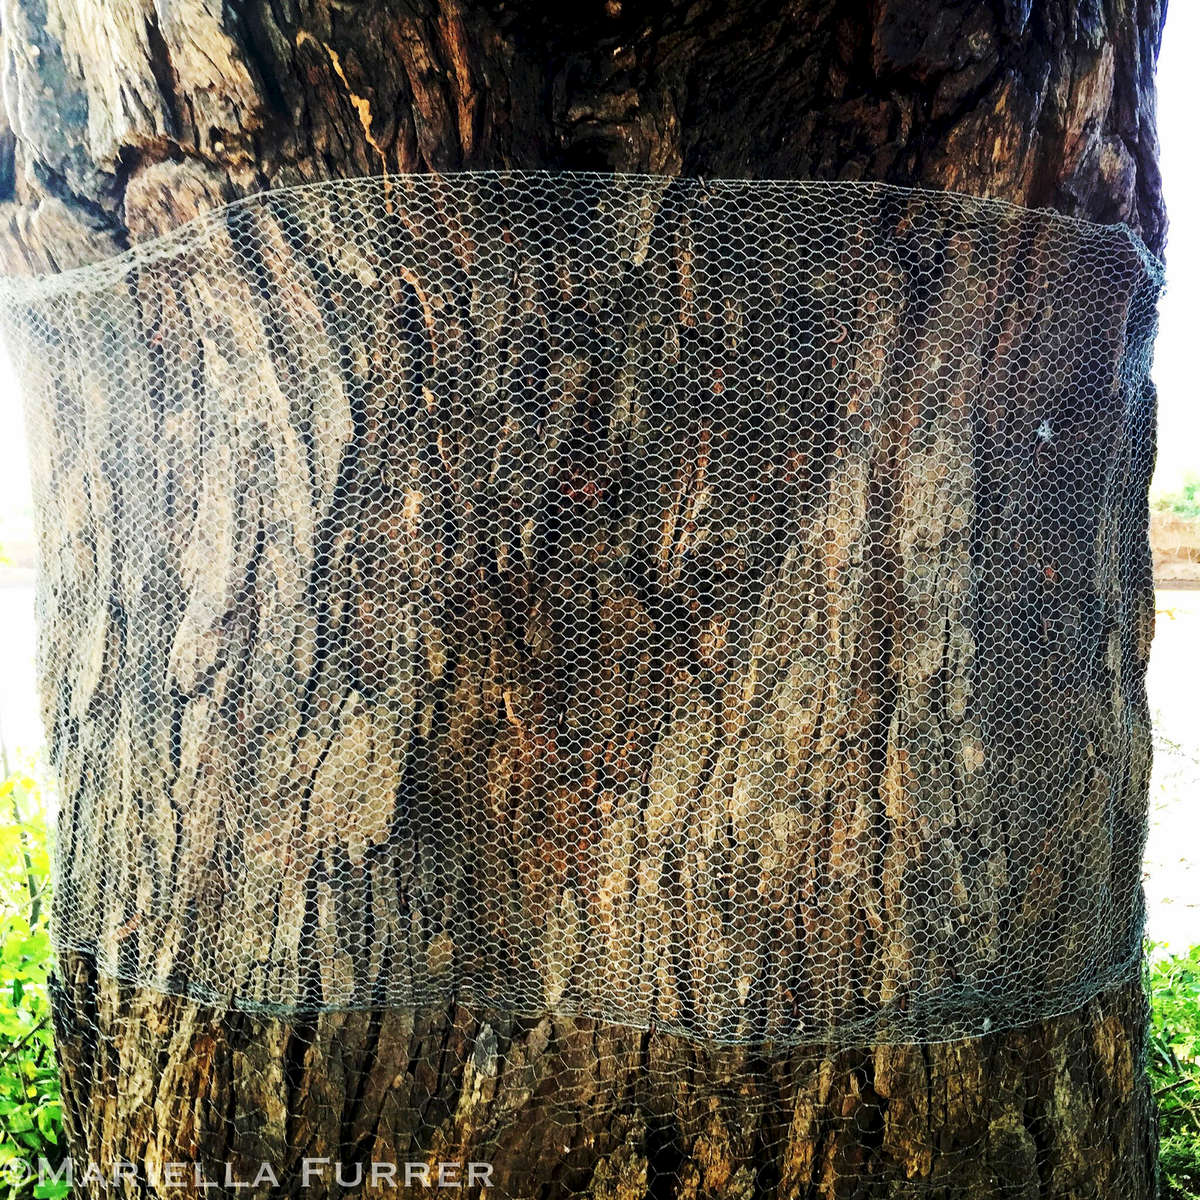 Wire mesh protects a tree at Elephant Watch Camp from elephants.